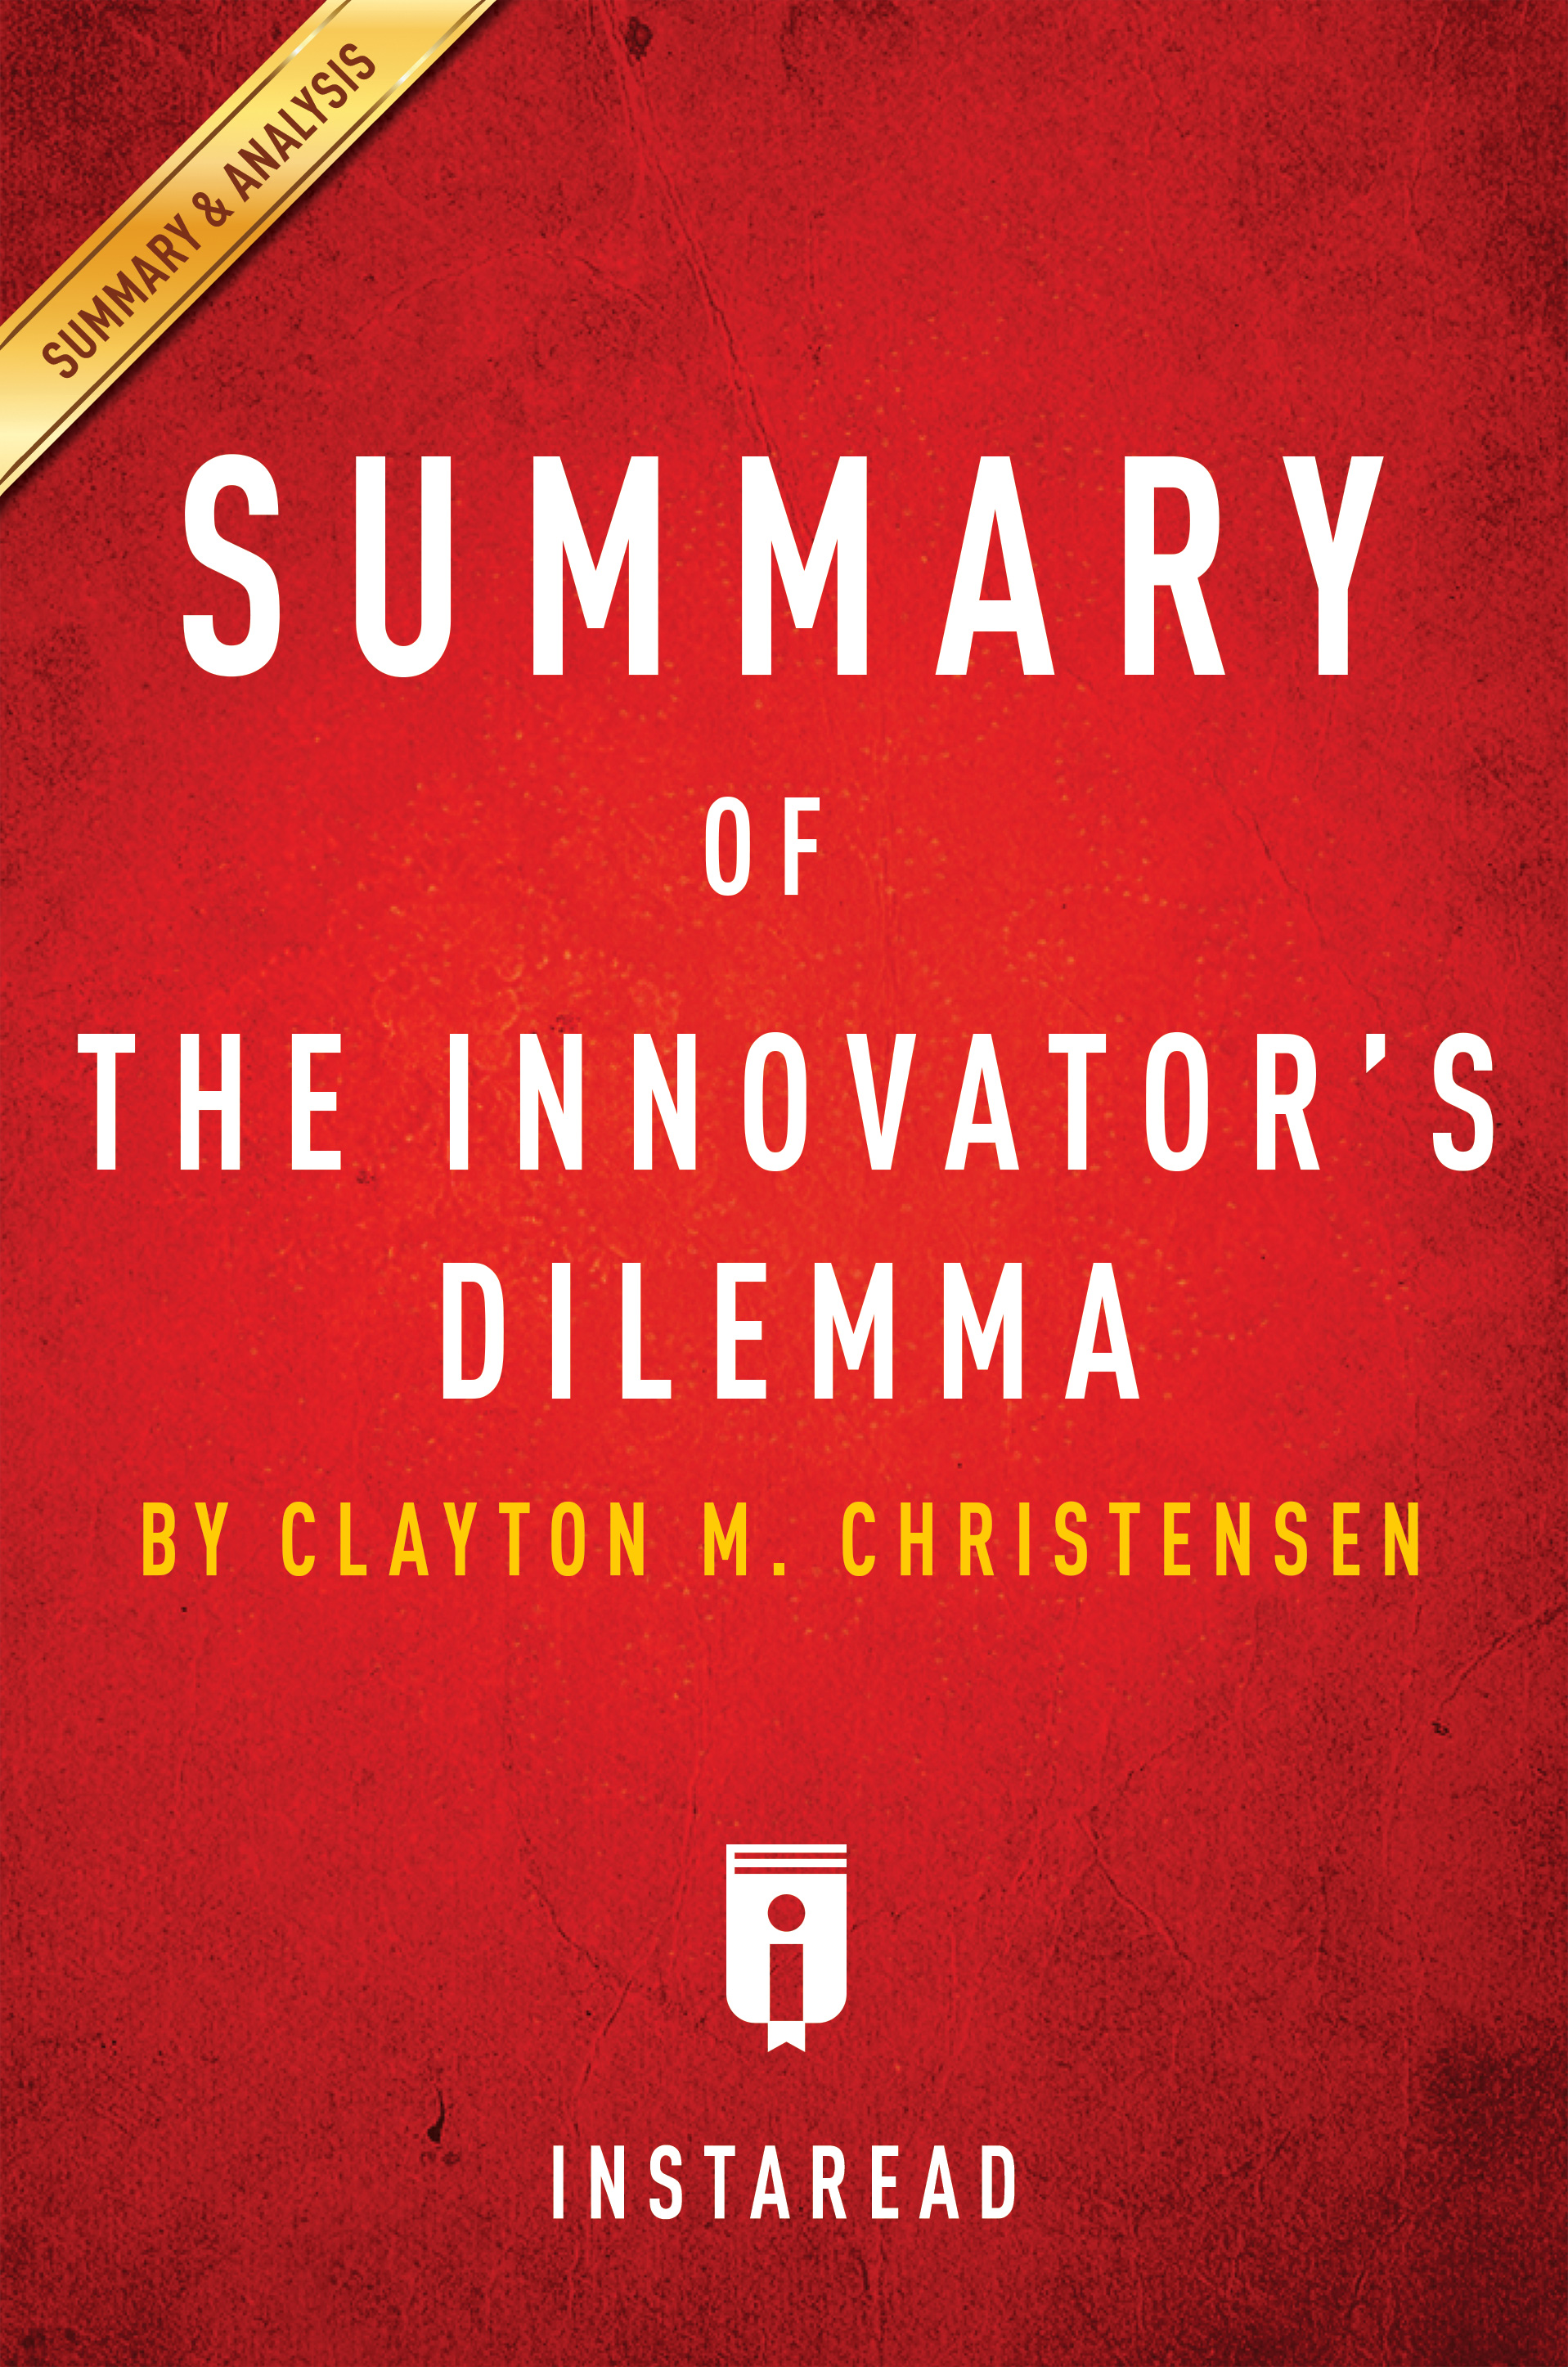 Download Ebook Summary of The Innovator's Dilemma by . Instaread Pdf